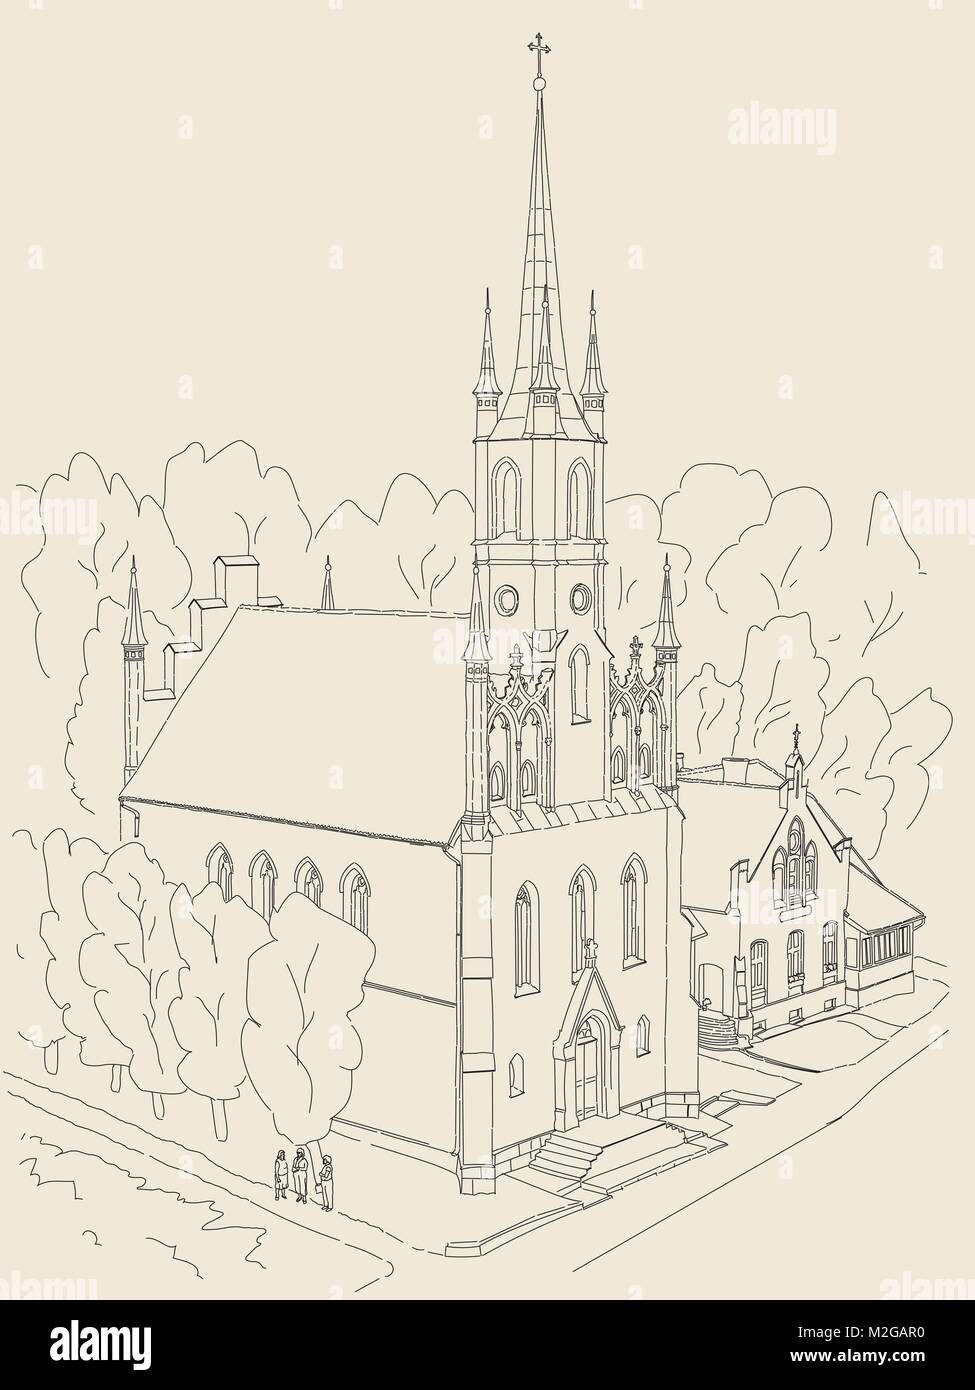 Black And White Sketch Of The Cathedral In Gothic Style Small Cozy